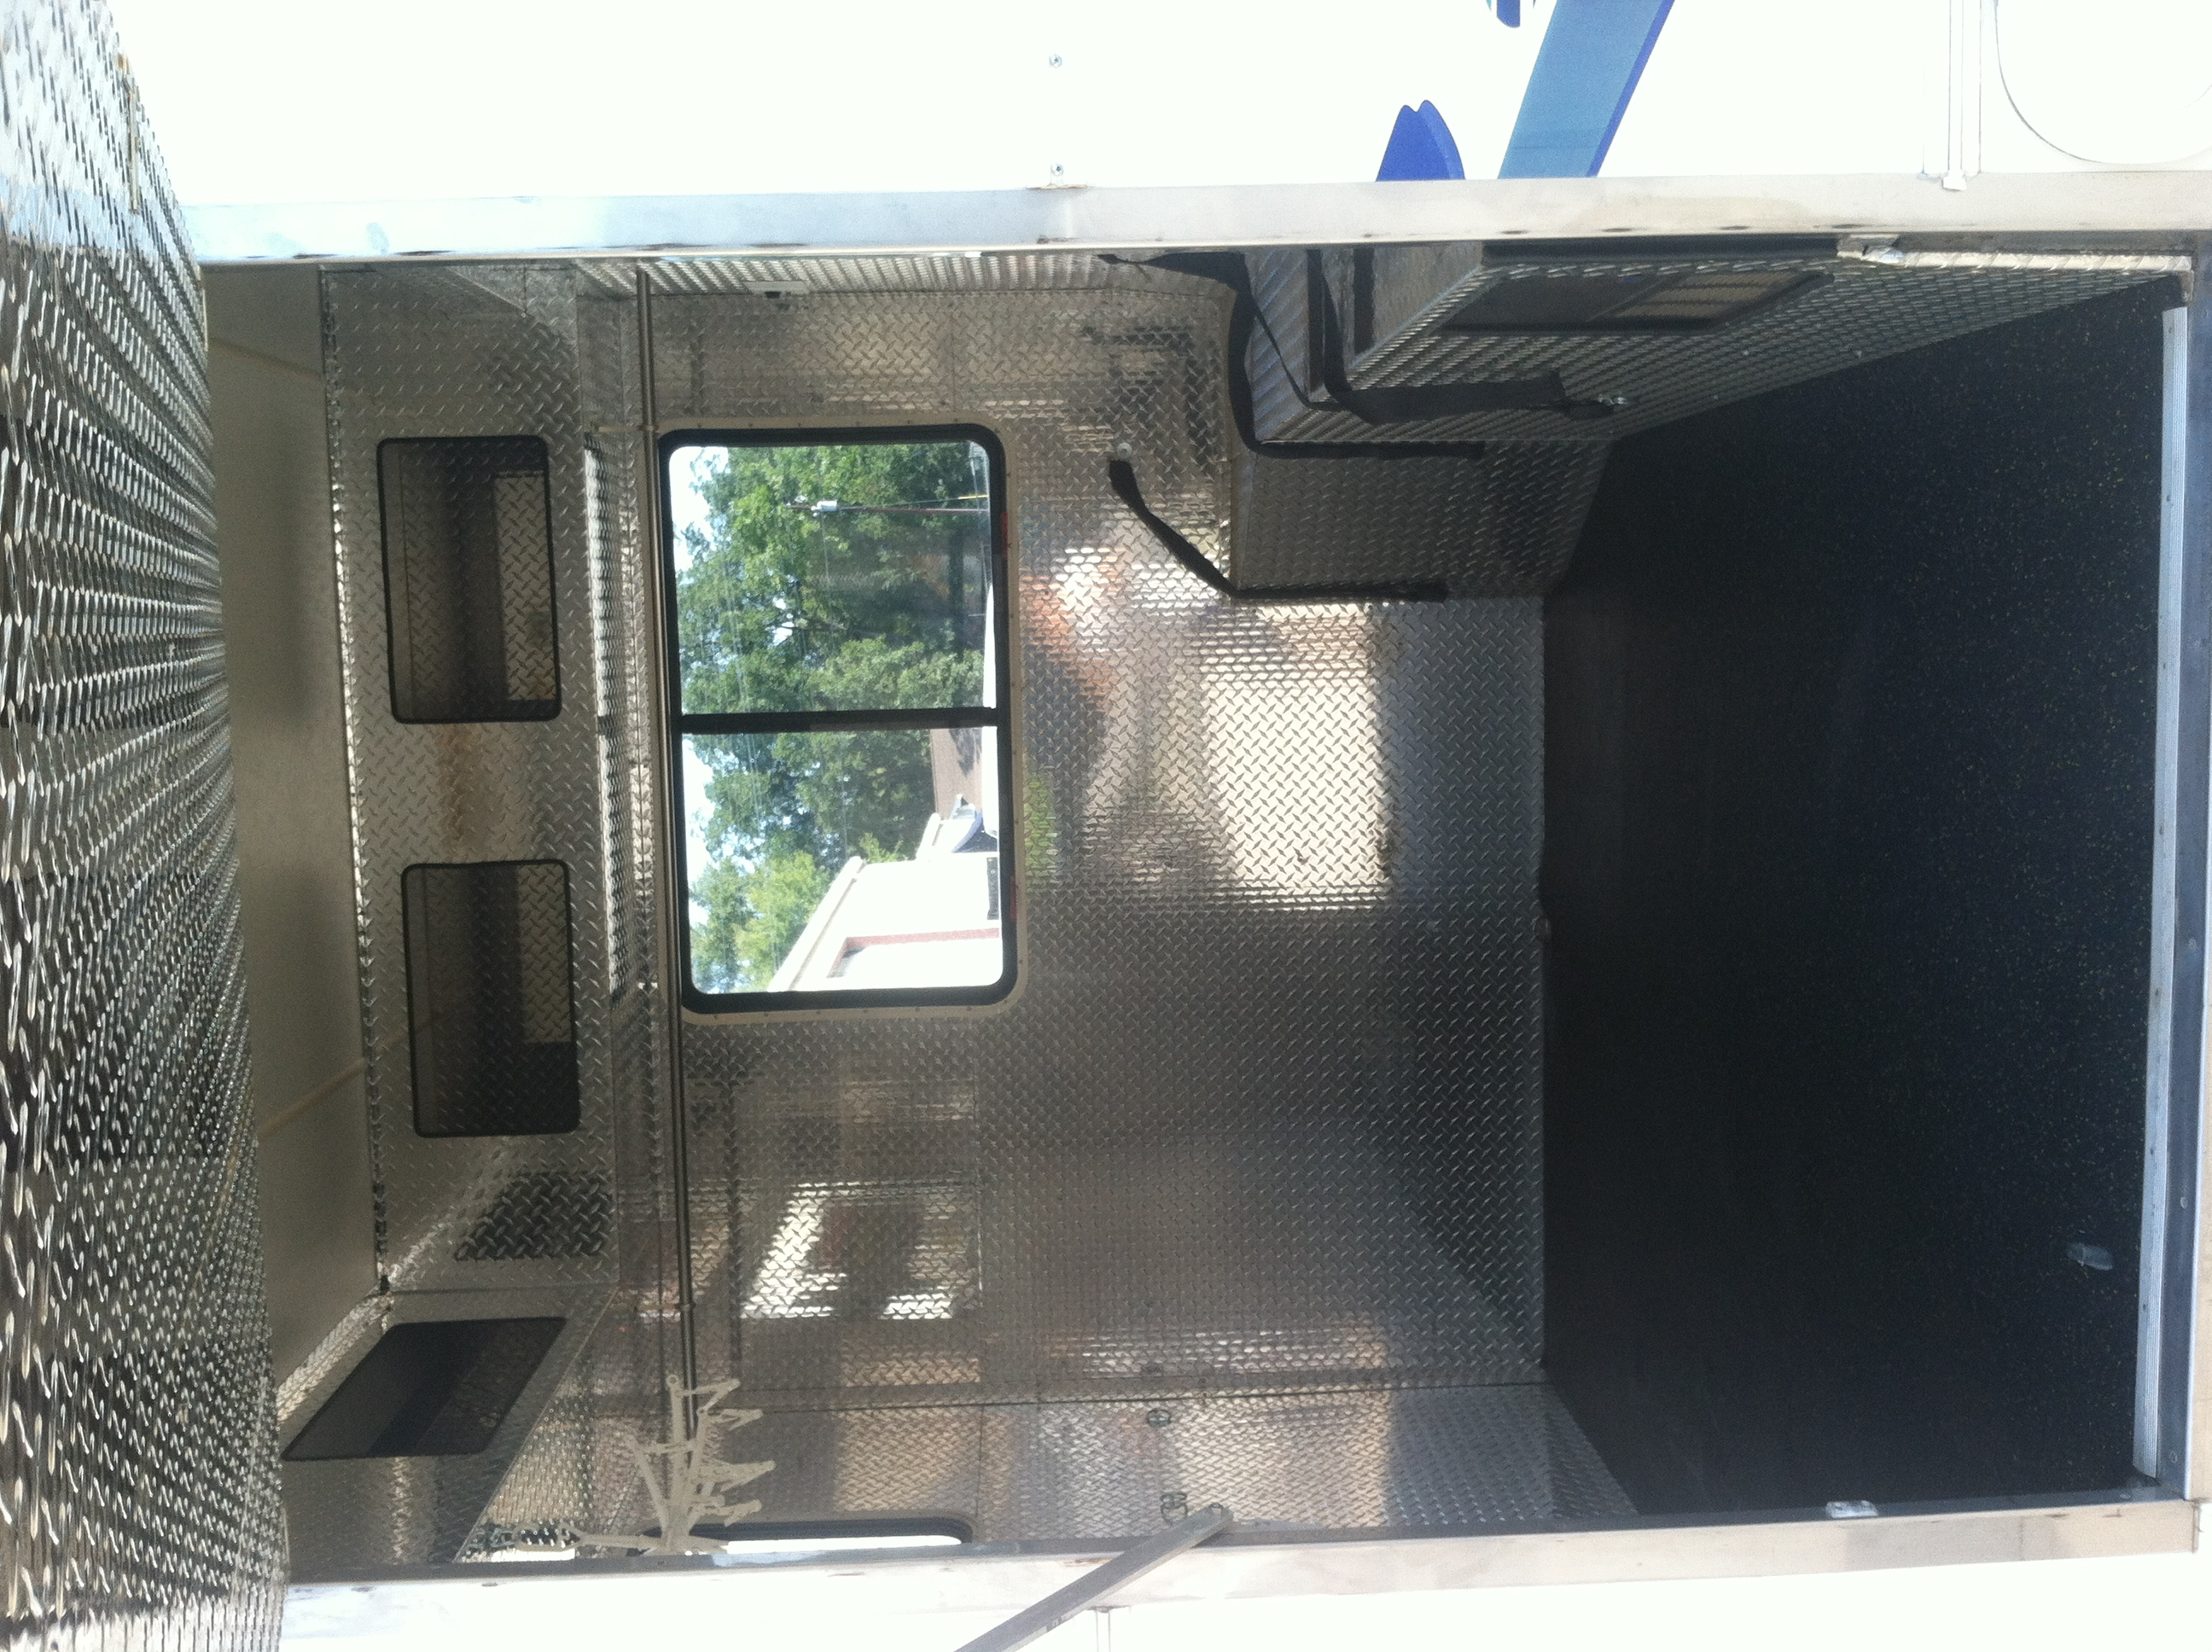 Class c rv w garage for sale bazaar motocross forums for Rv with car garage for sale